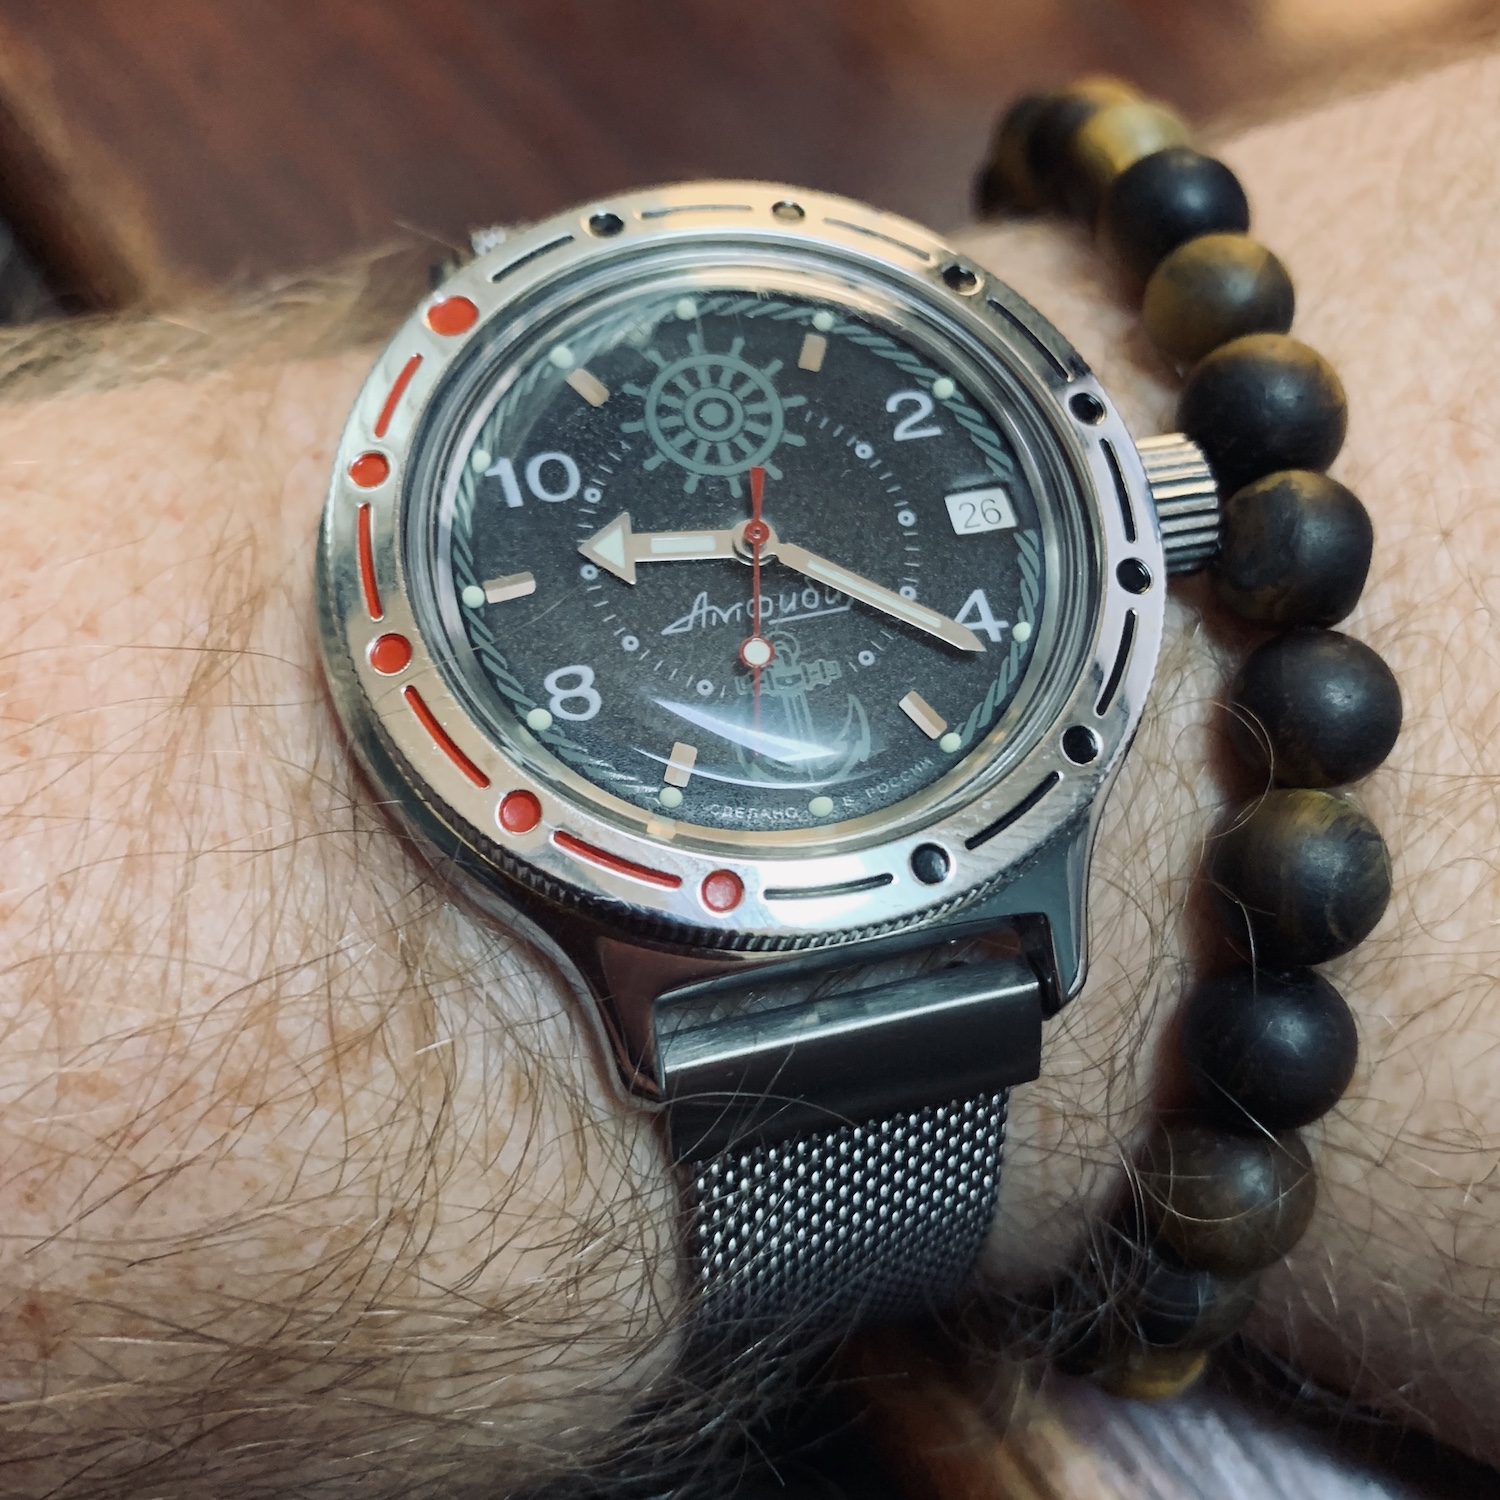 A Vostok Amphibia dive-style watch on a steel mesh strap. The watch features a black dial with a light grey design of a ship's wheel and anchor. The watch case is stainless steel.